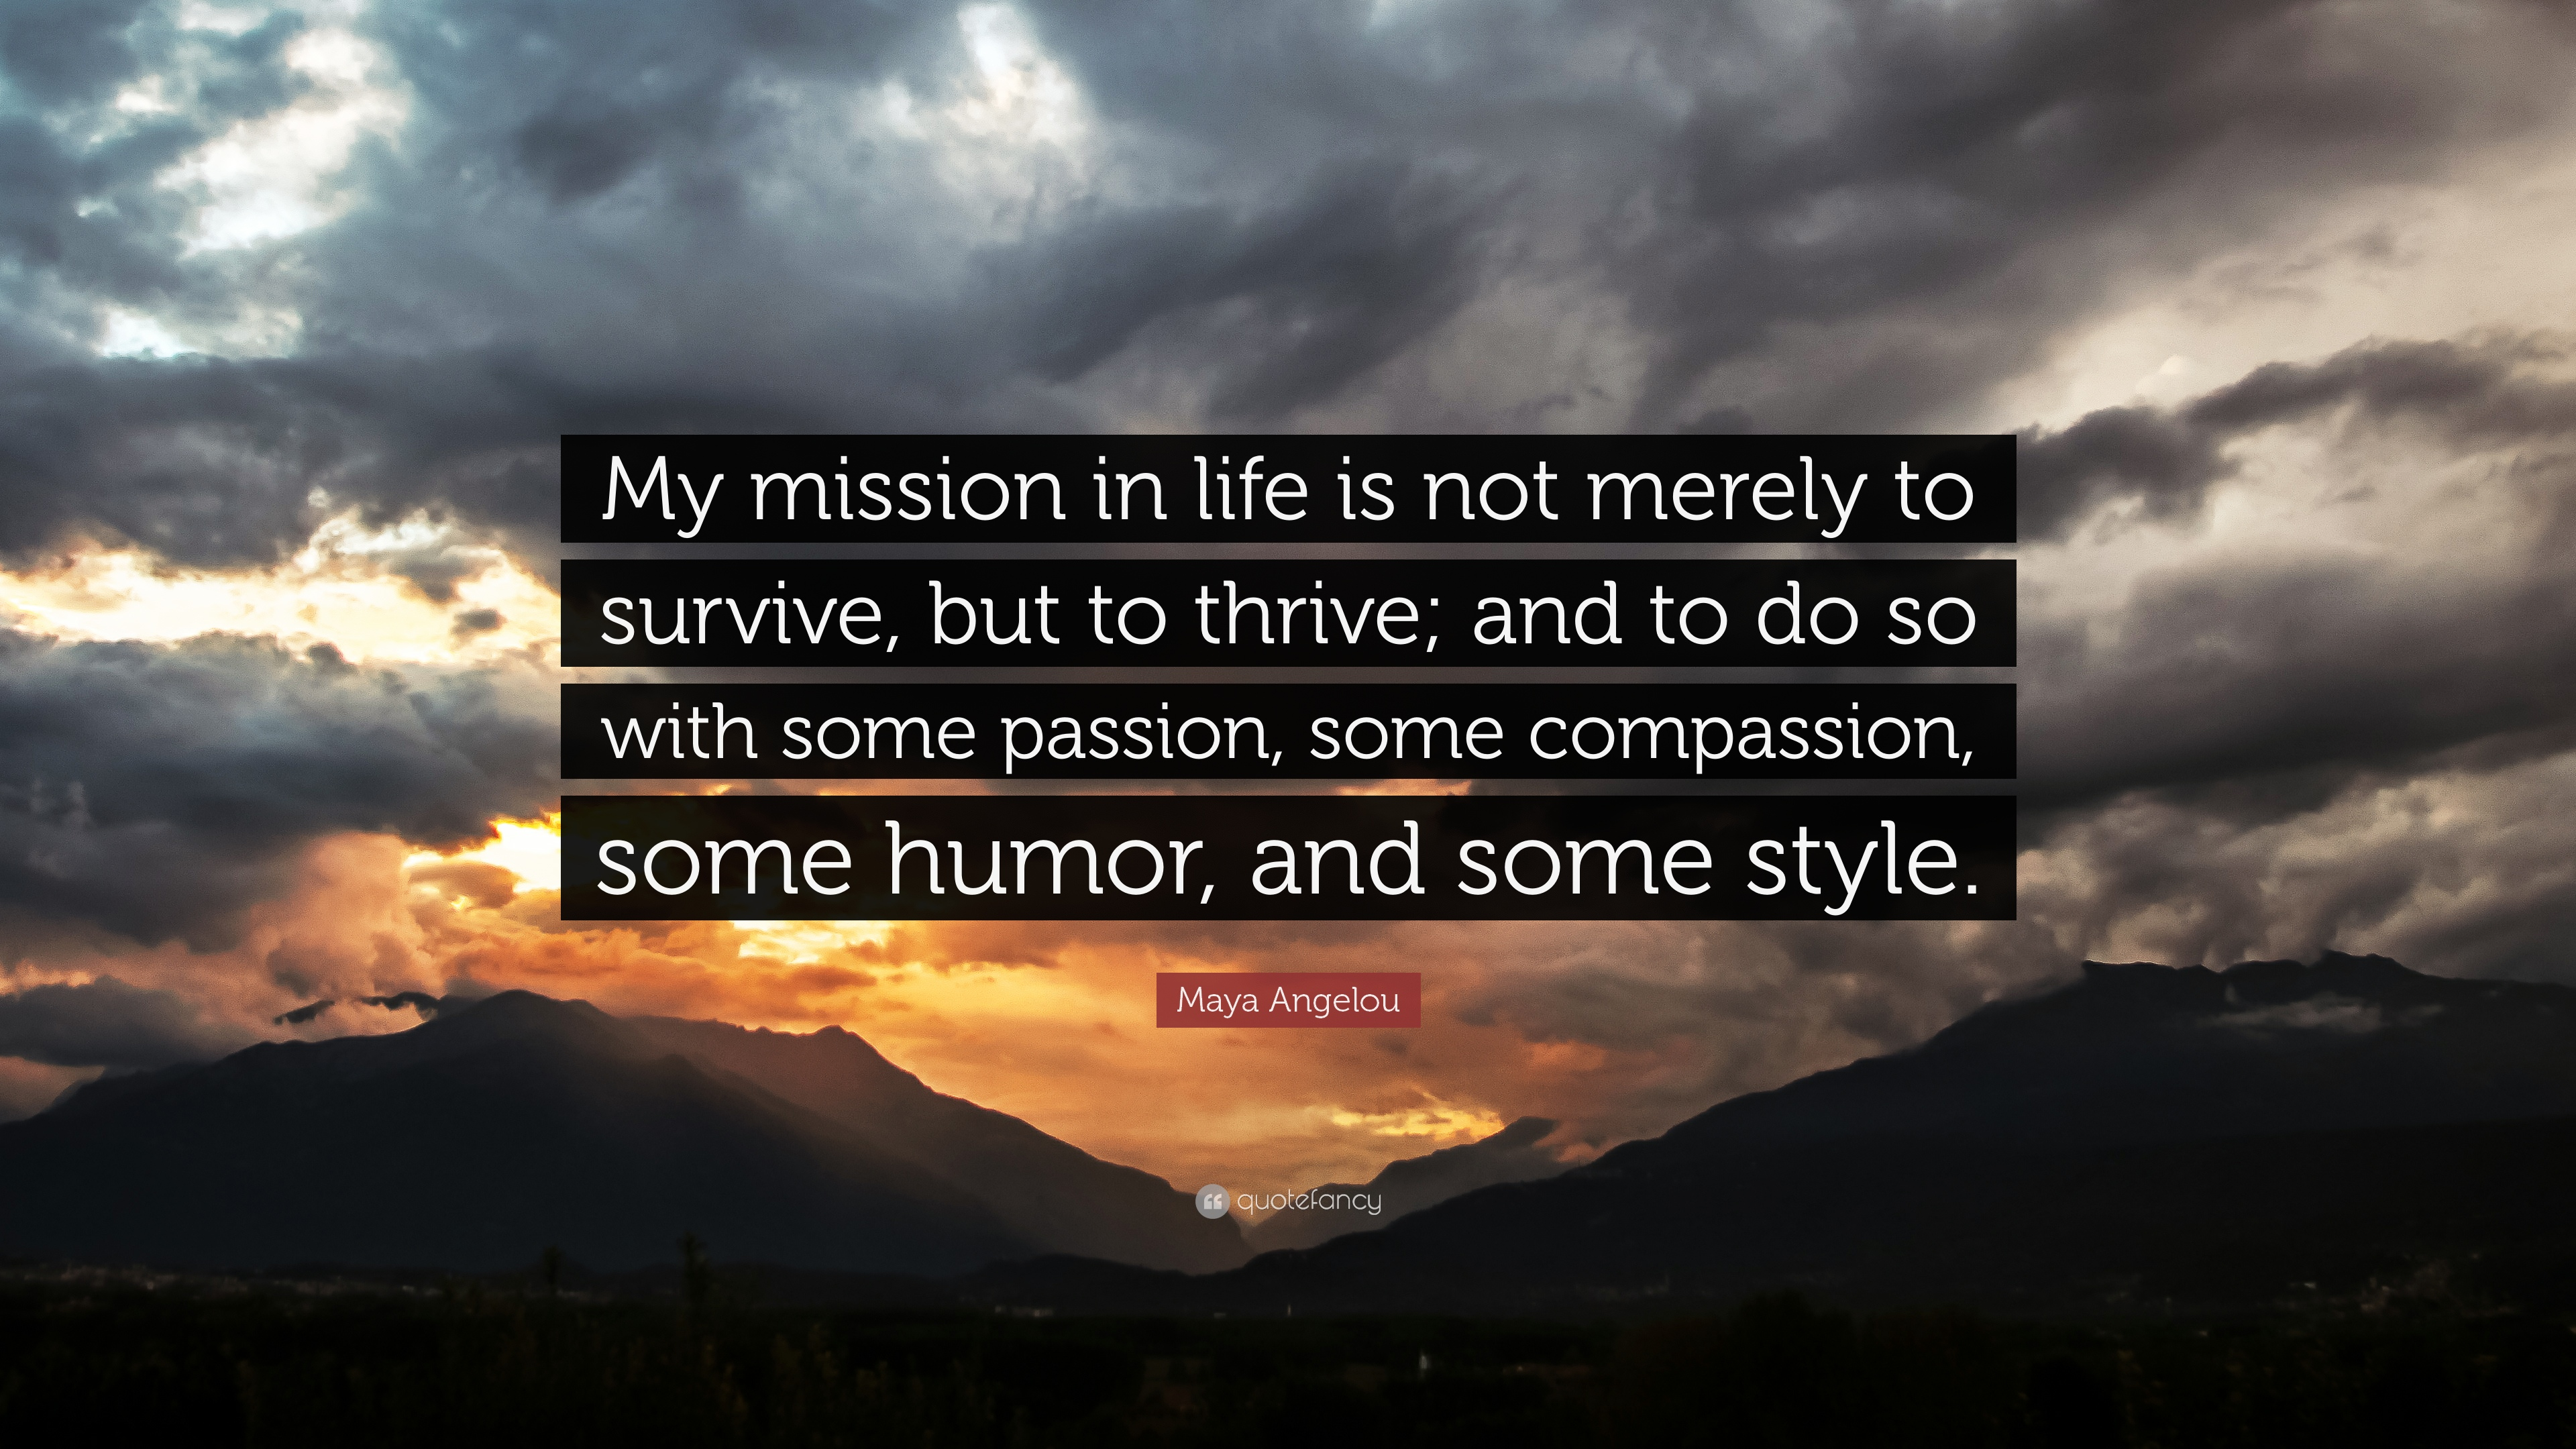 Mission Trip Quotes Inspiring Quotes 40 Wallpapers  Quotefancy